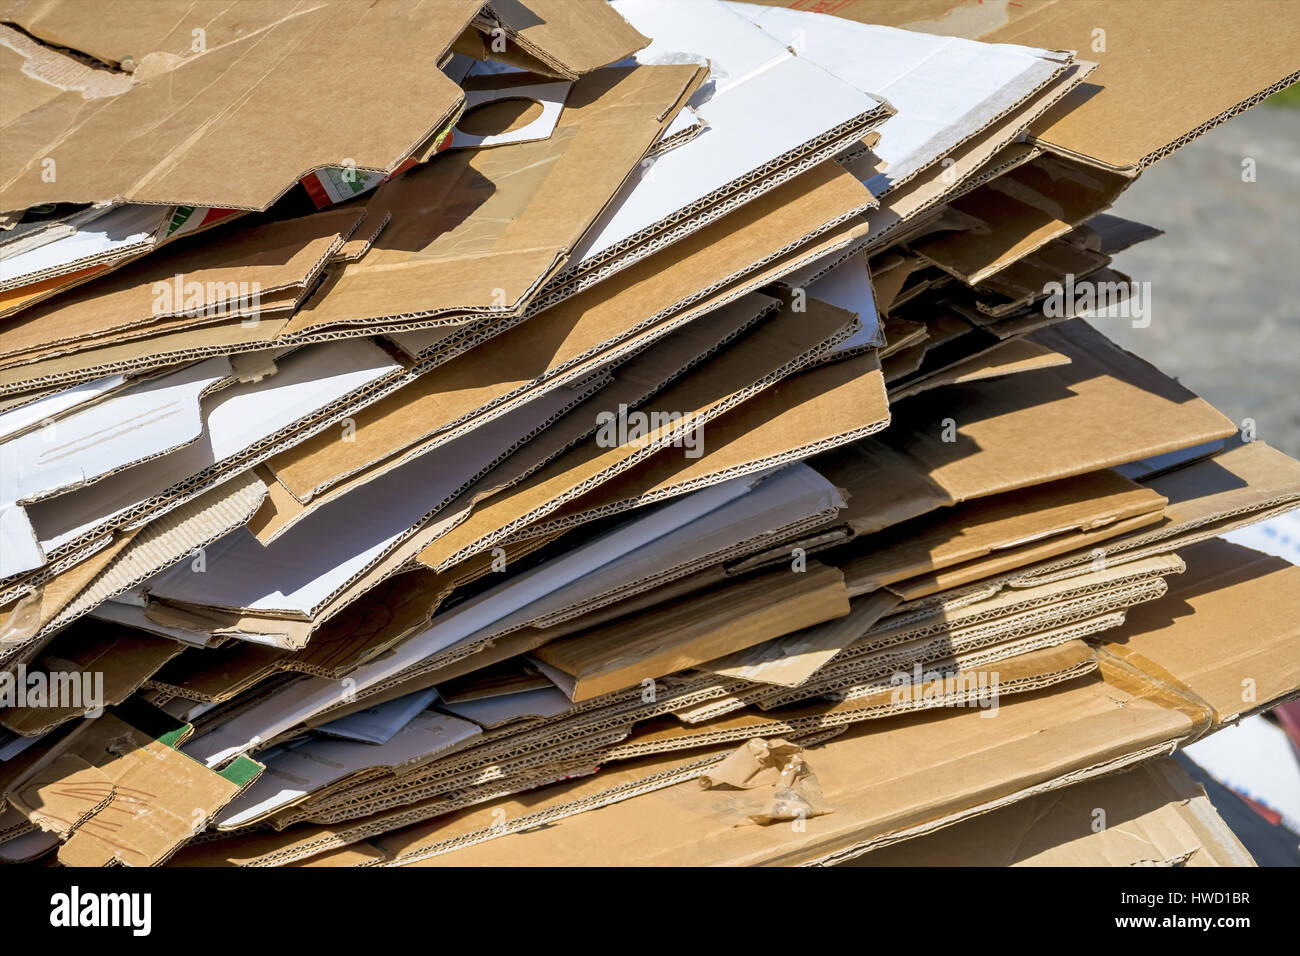 Cardboards wait for the collection by the garbage disposal. Recycling of waste paper., Kartons warten auf die Abholung Stock Photo